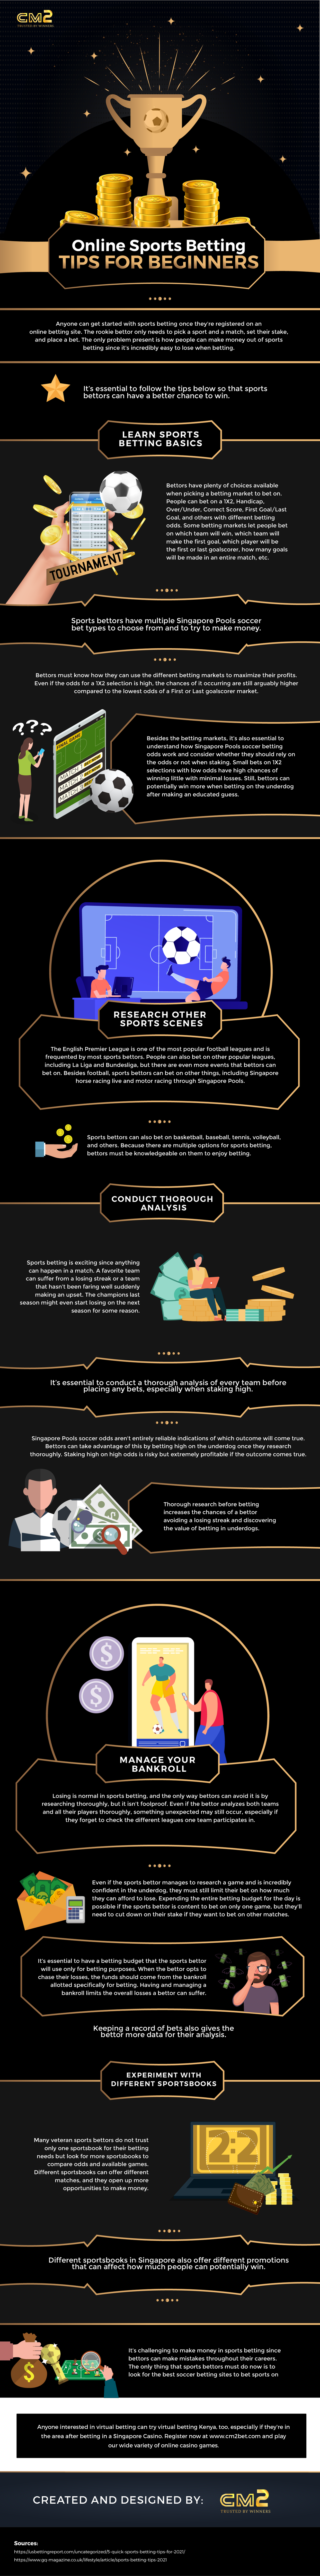 Online Sports Betting Tips for Beginners - Infographic